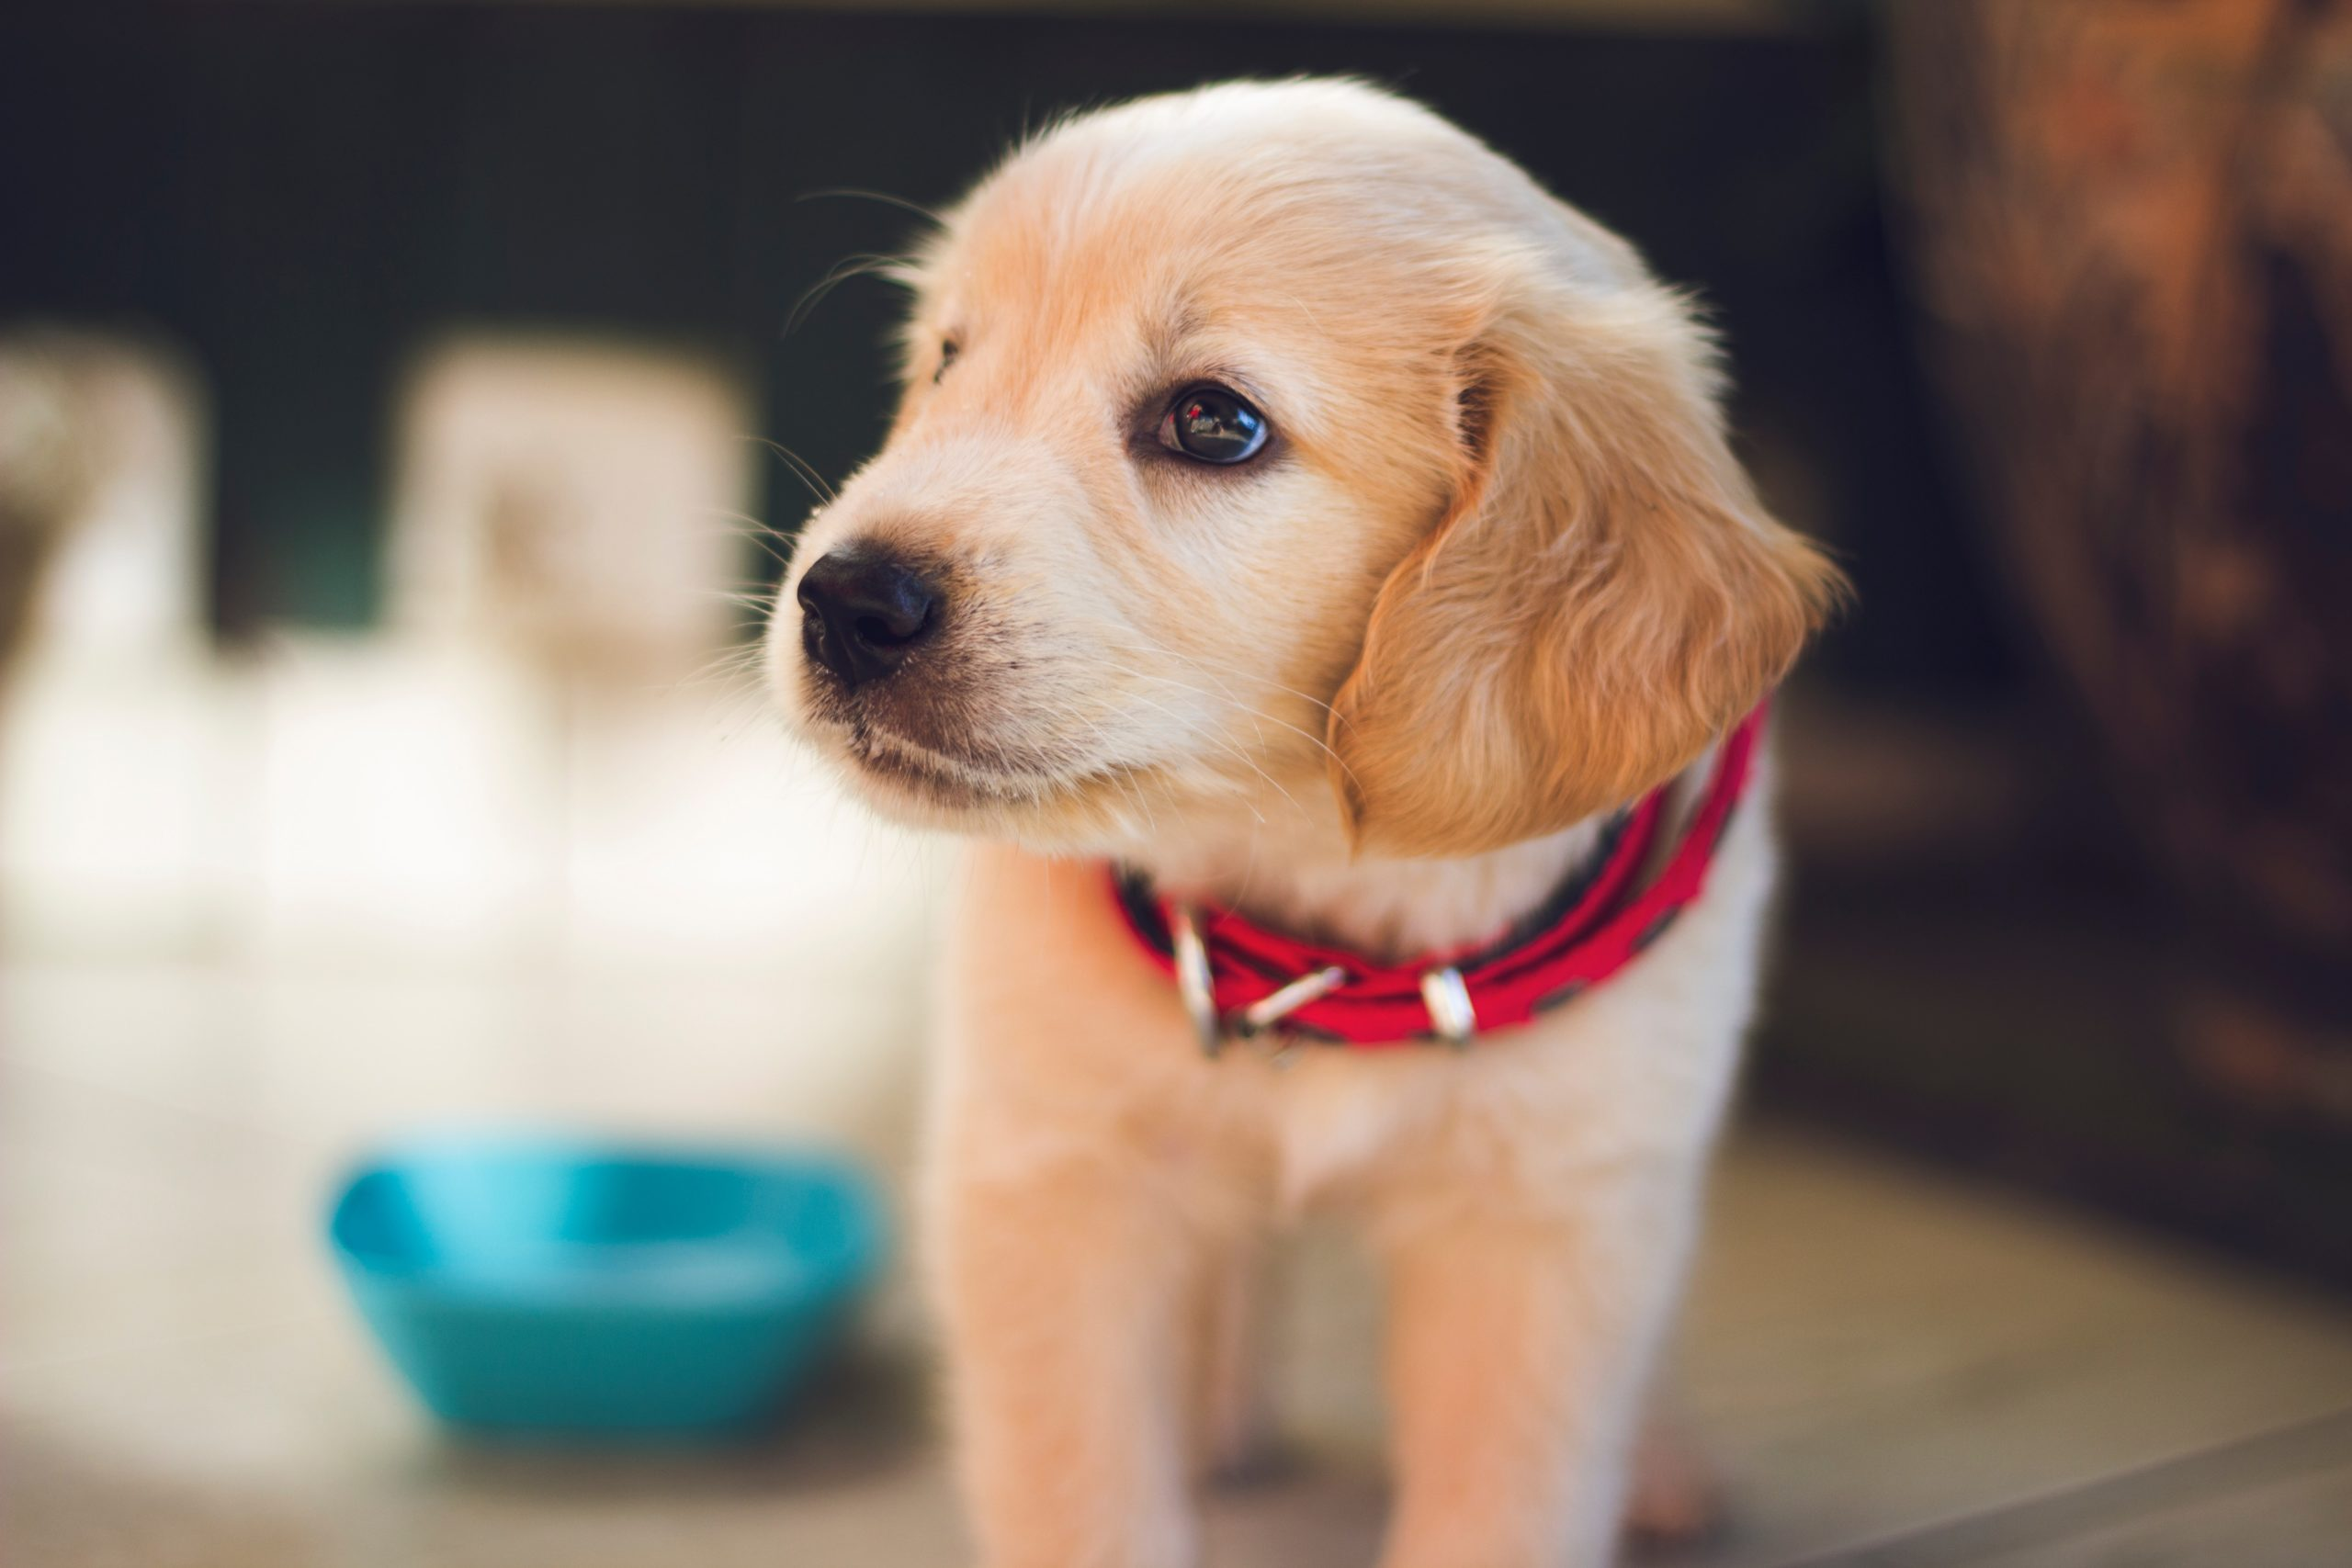 Top 5 Simple Puppy Toilet Training Things To Help You